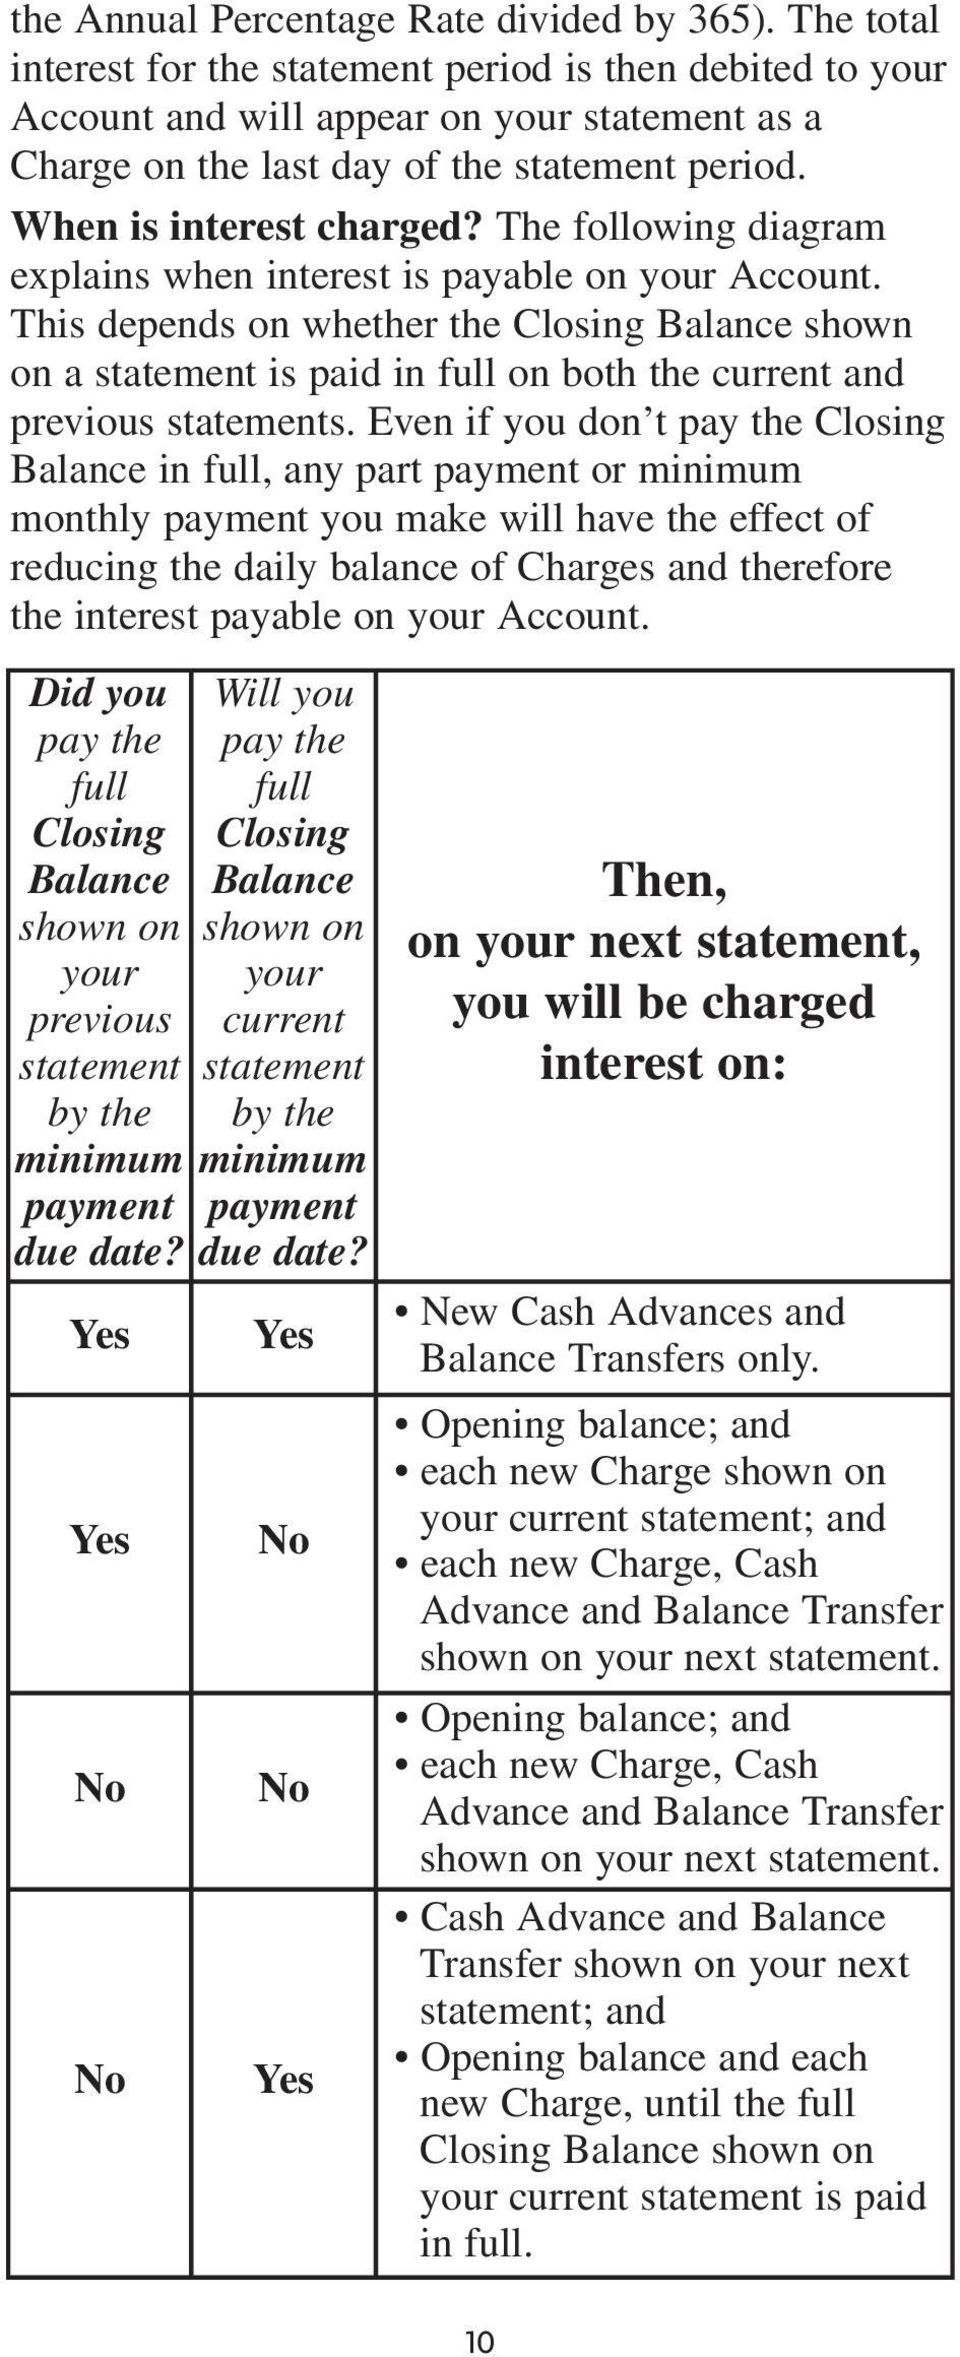 The following diagram explains when interest is payable on your Account. This depends on whether the Closing Balance shown on a statement is paid in full on both the current and previous statements.